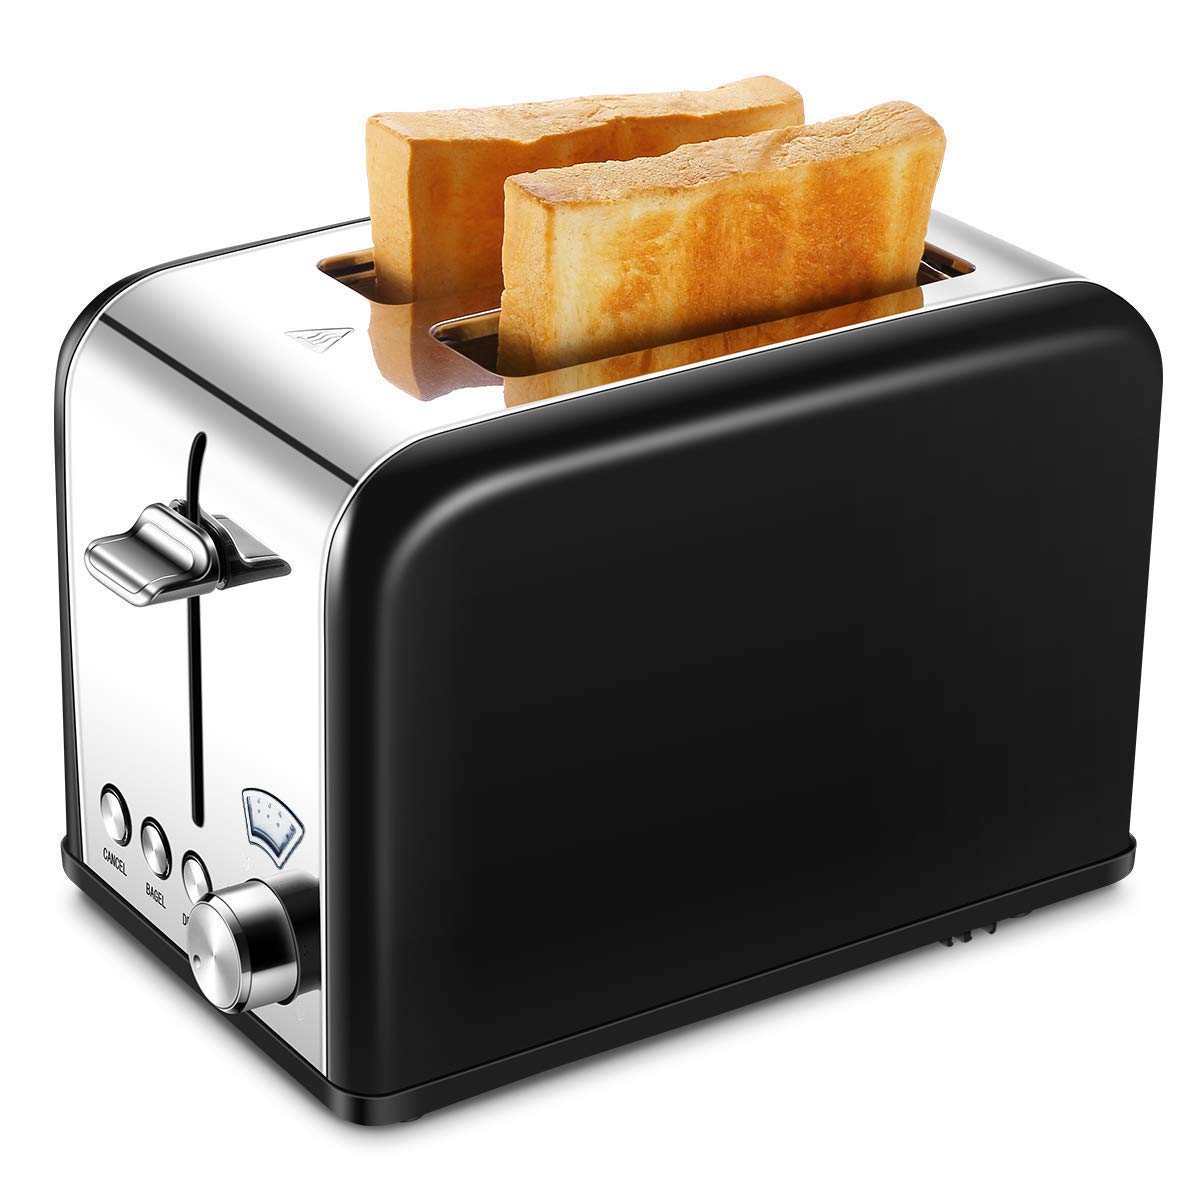 Love This Toaster!